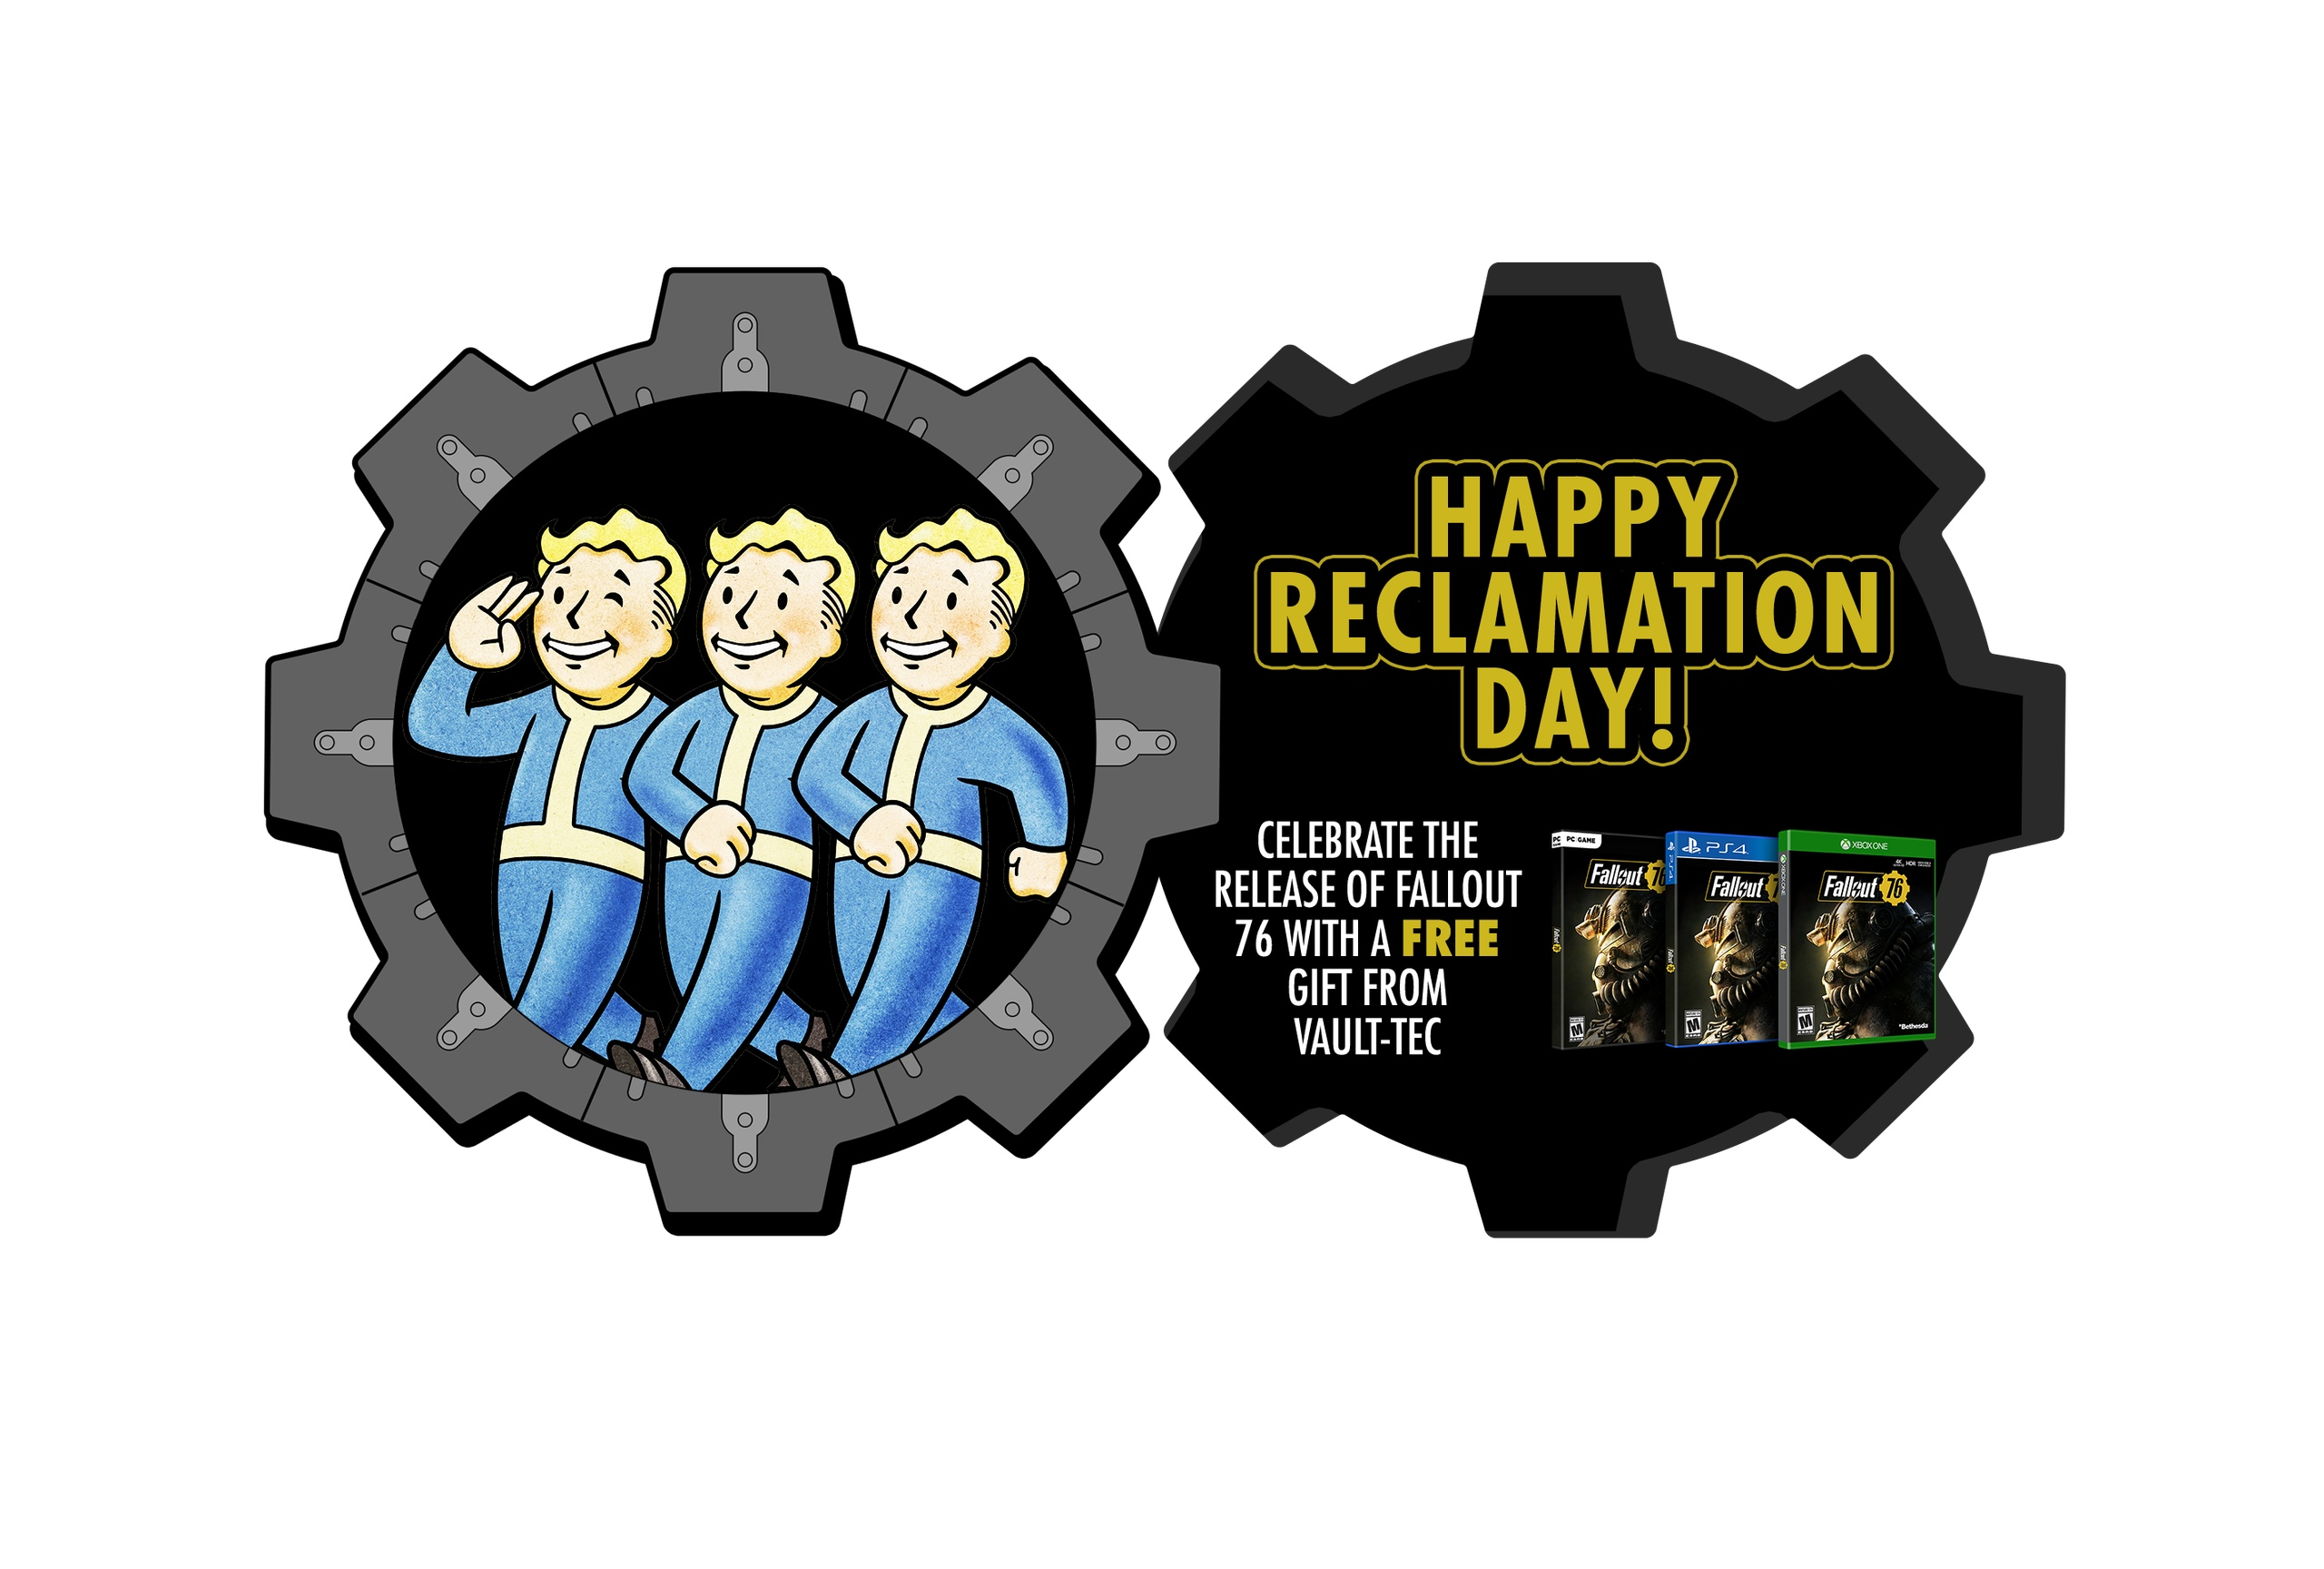 Happy Reclamation Day!